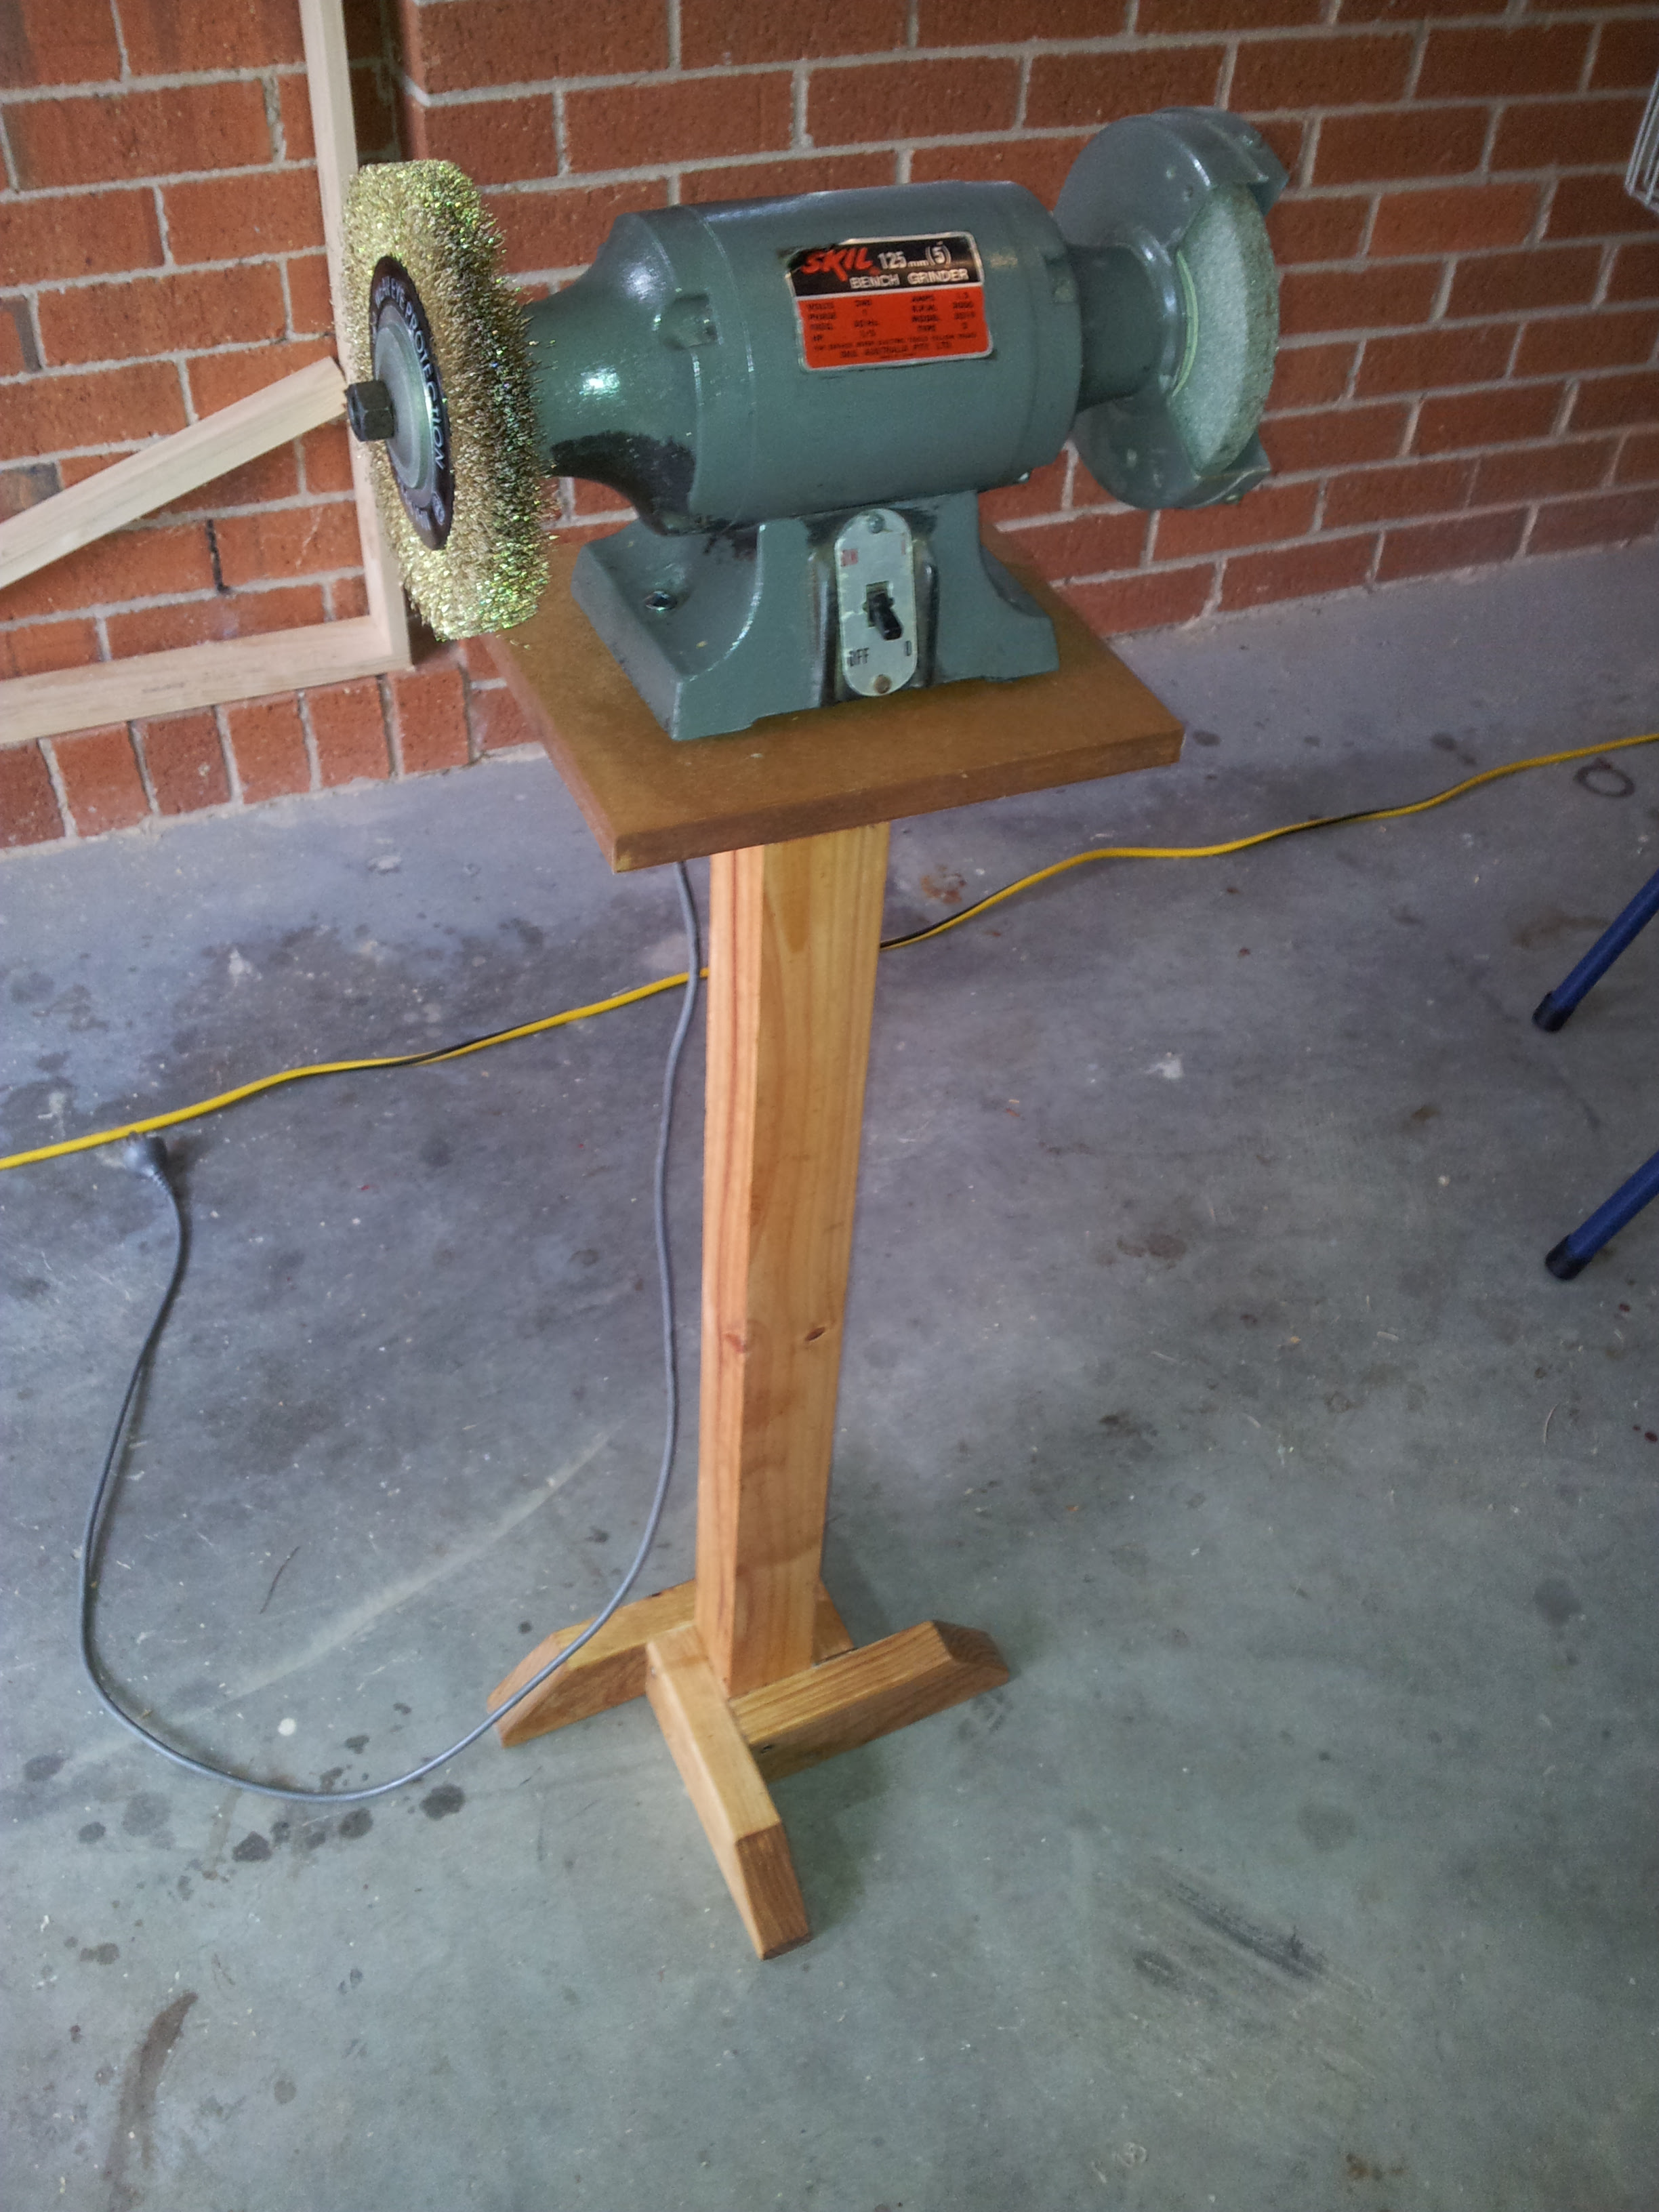 Peachy Fine Woodworking Bench Grinder Review Caraccident5 Cool Chair Designs And Ideas Caraccident5Info